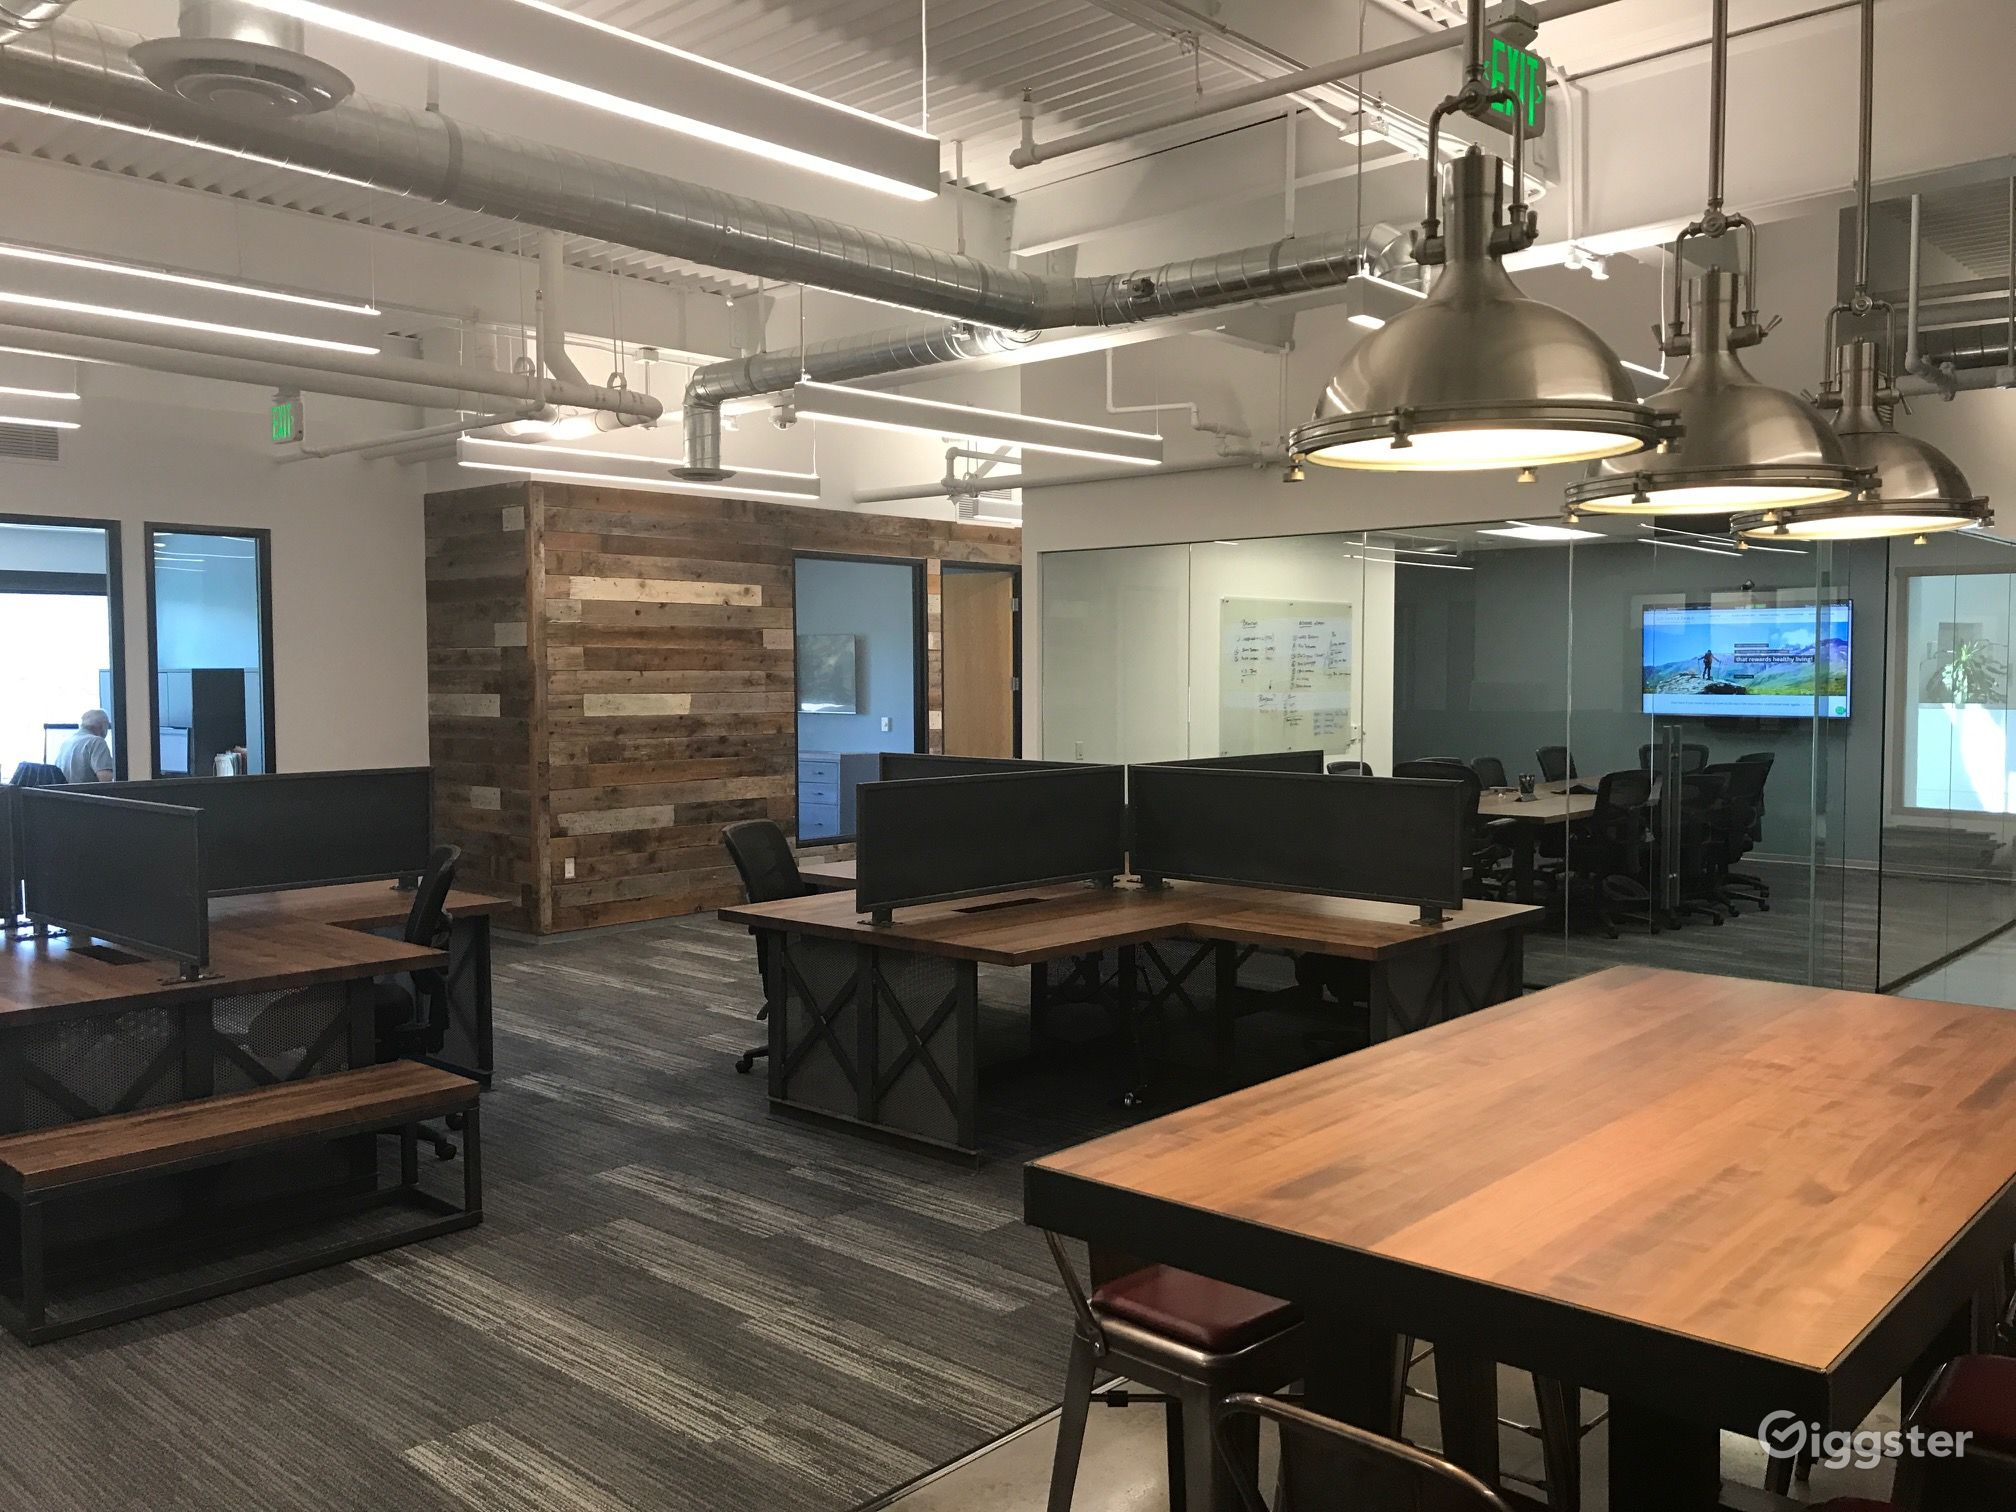 Awesome Modern Industrial Office With Tech Vibe Rent This Location On Giggster